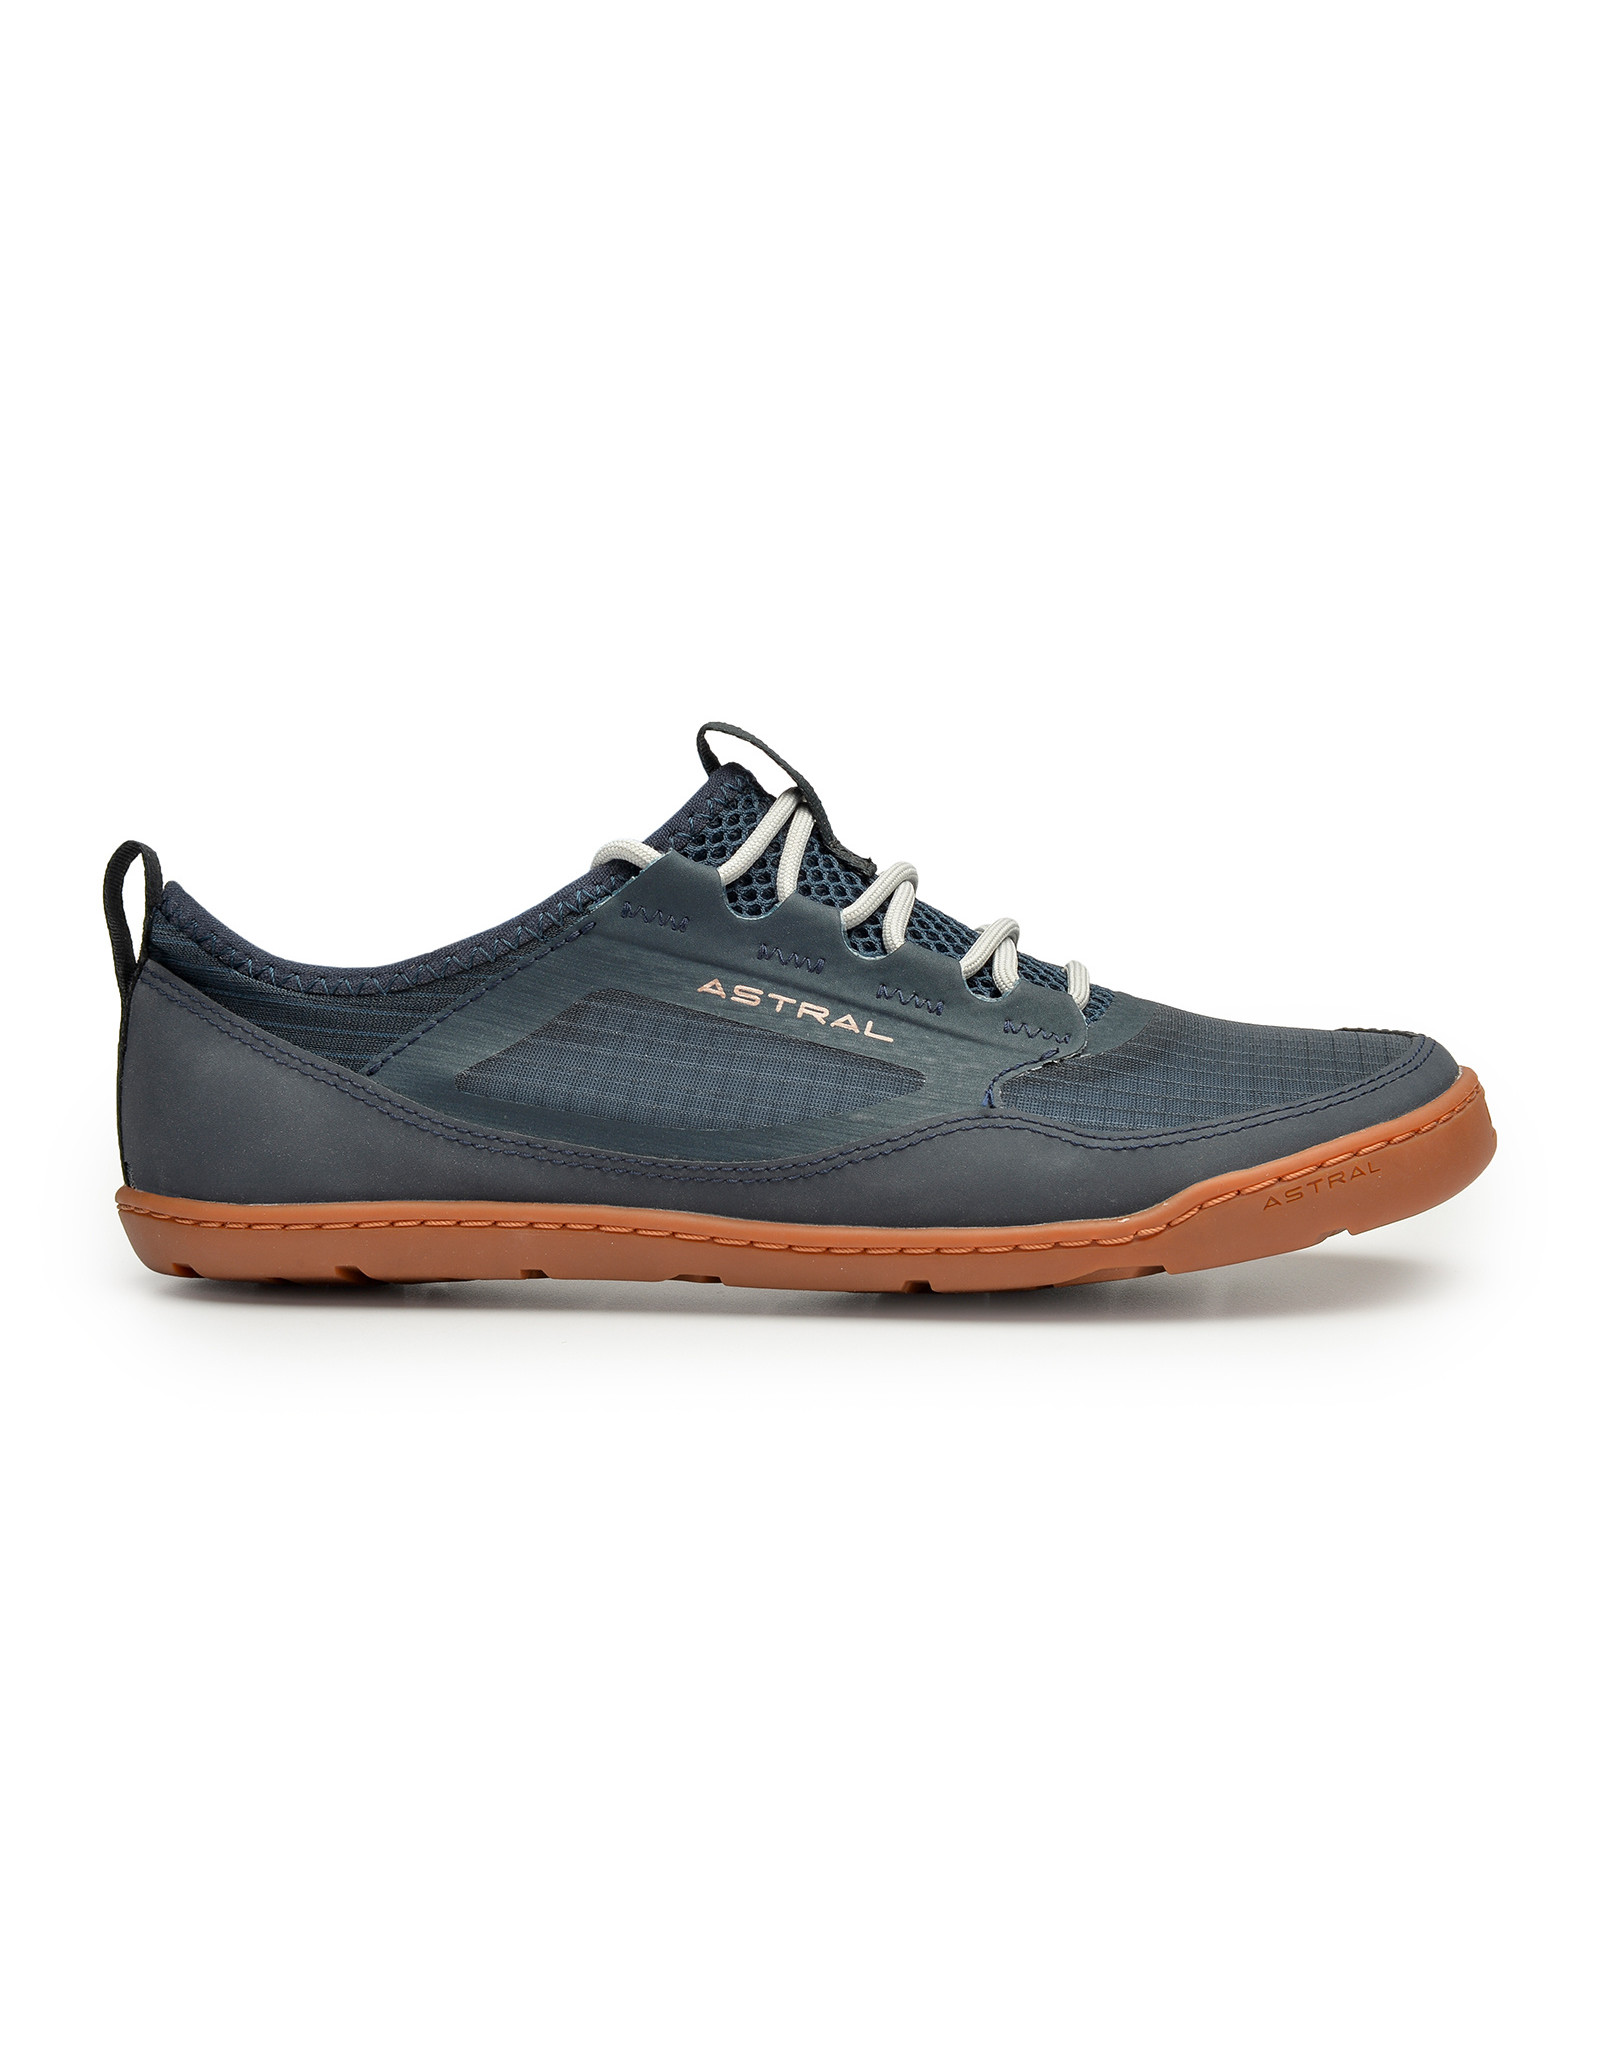 Astral Astral Loyak AC Shoes Womens - Classic Navy